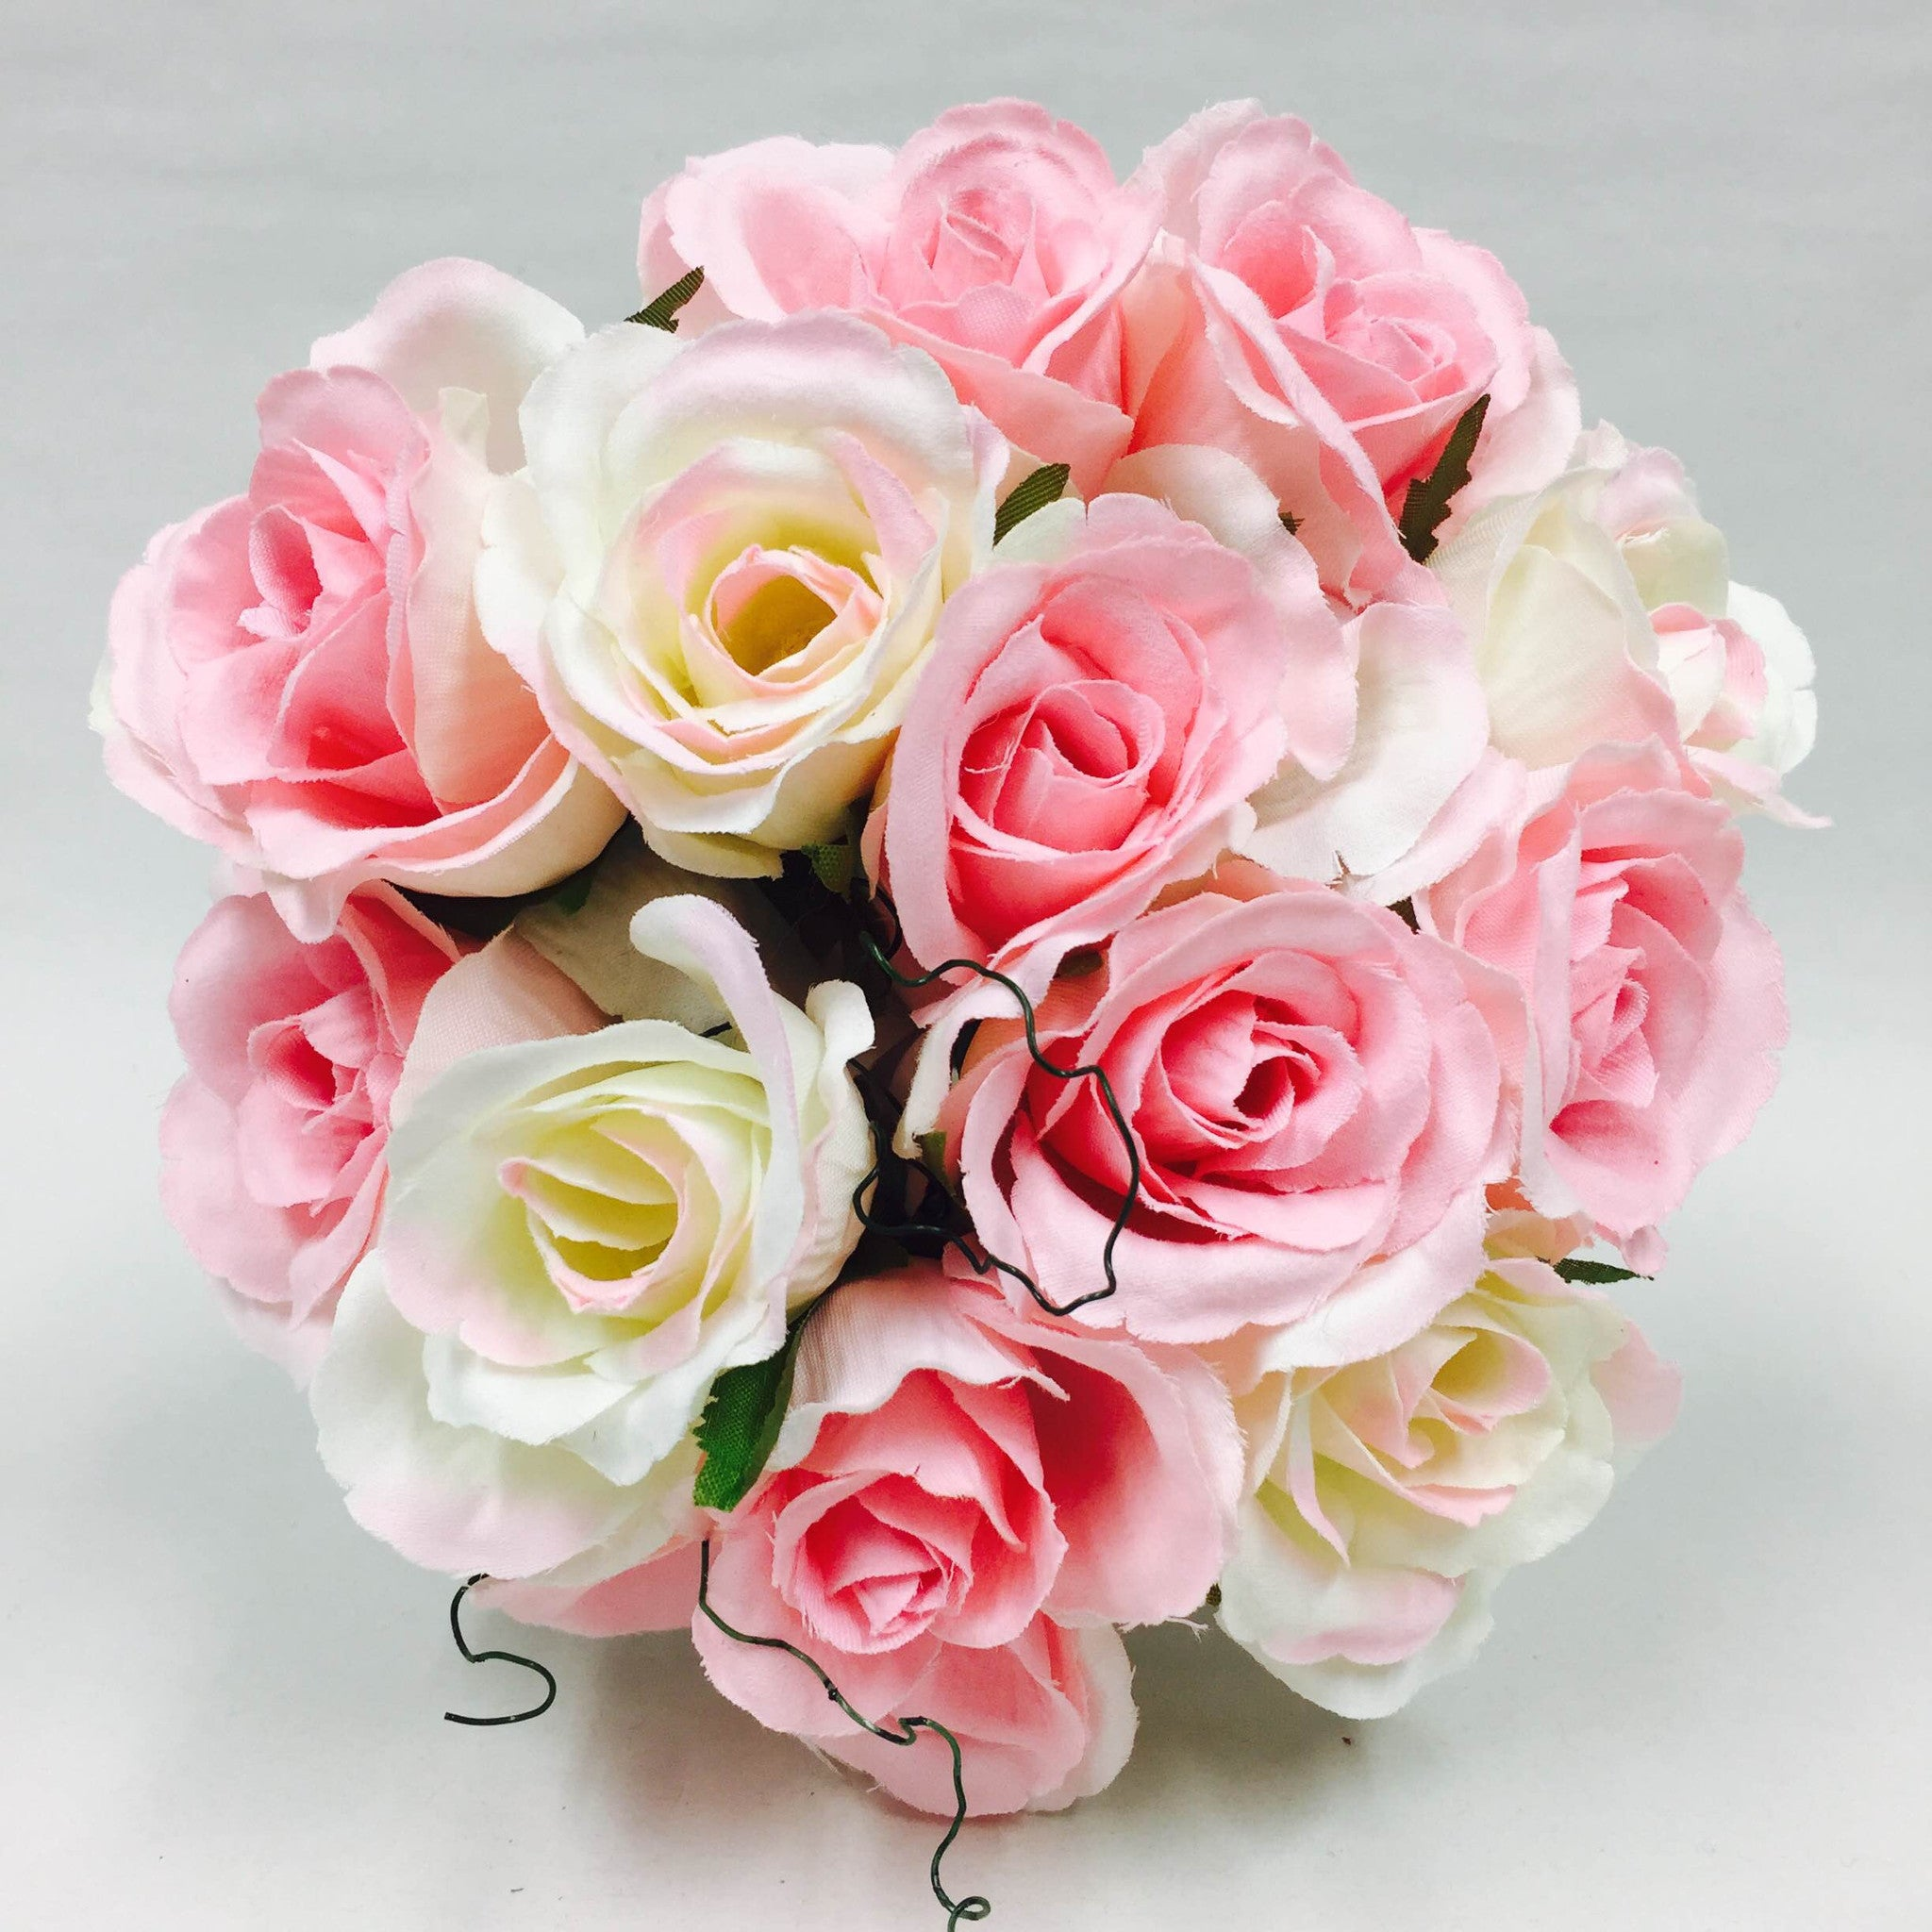 Ivory & Baby Pink Rose Bouquet - My Wedding Store